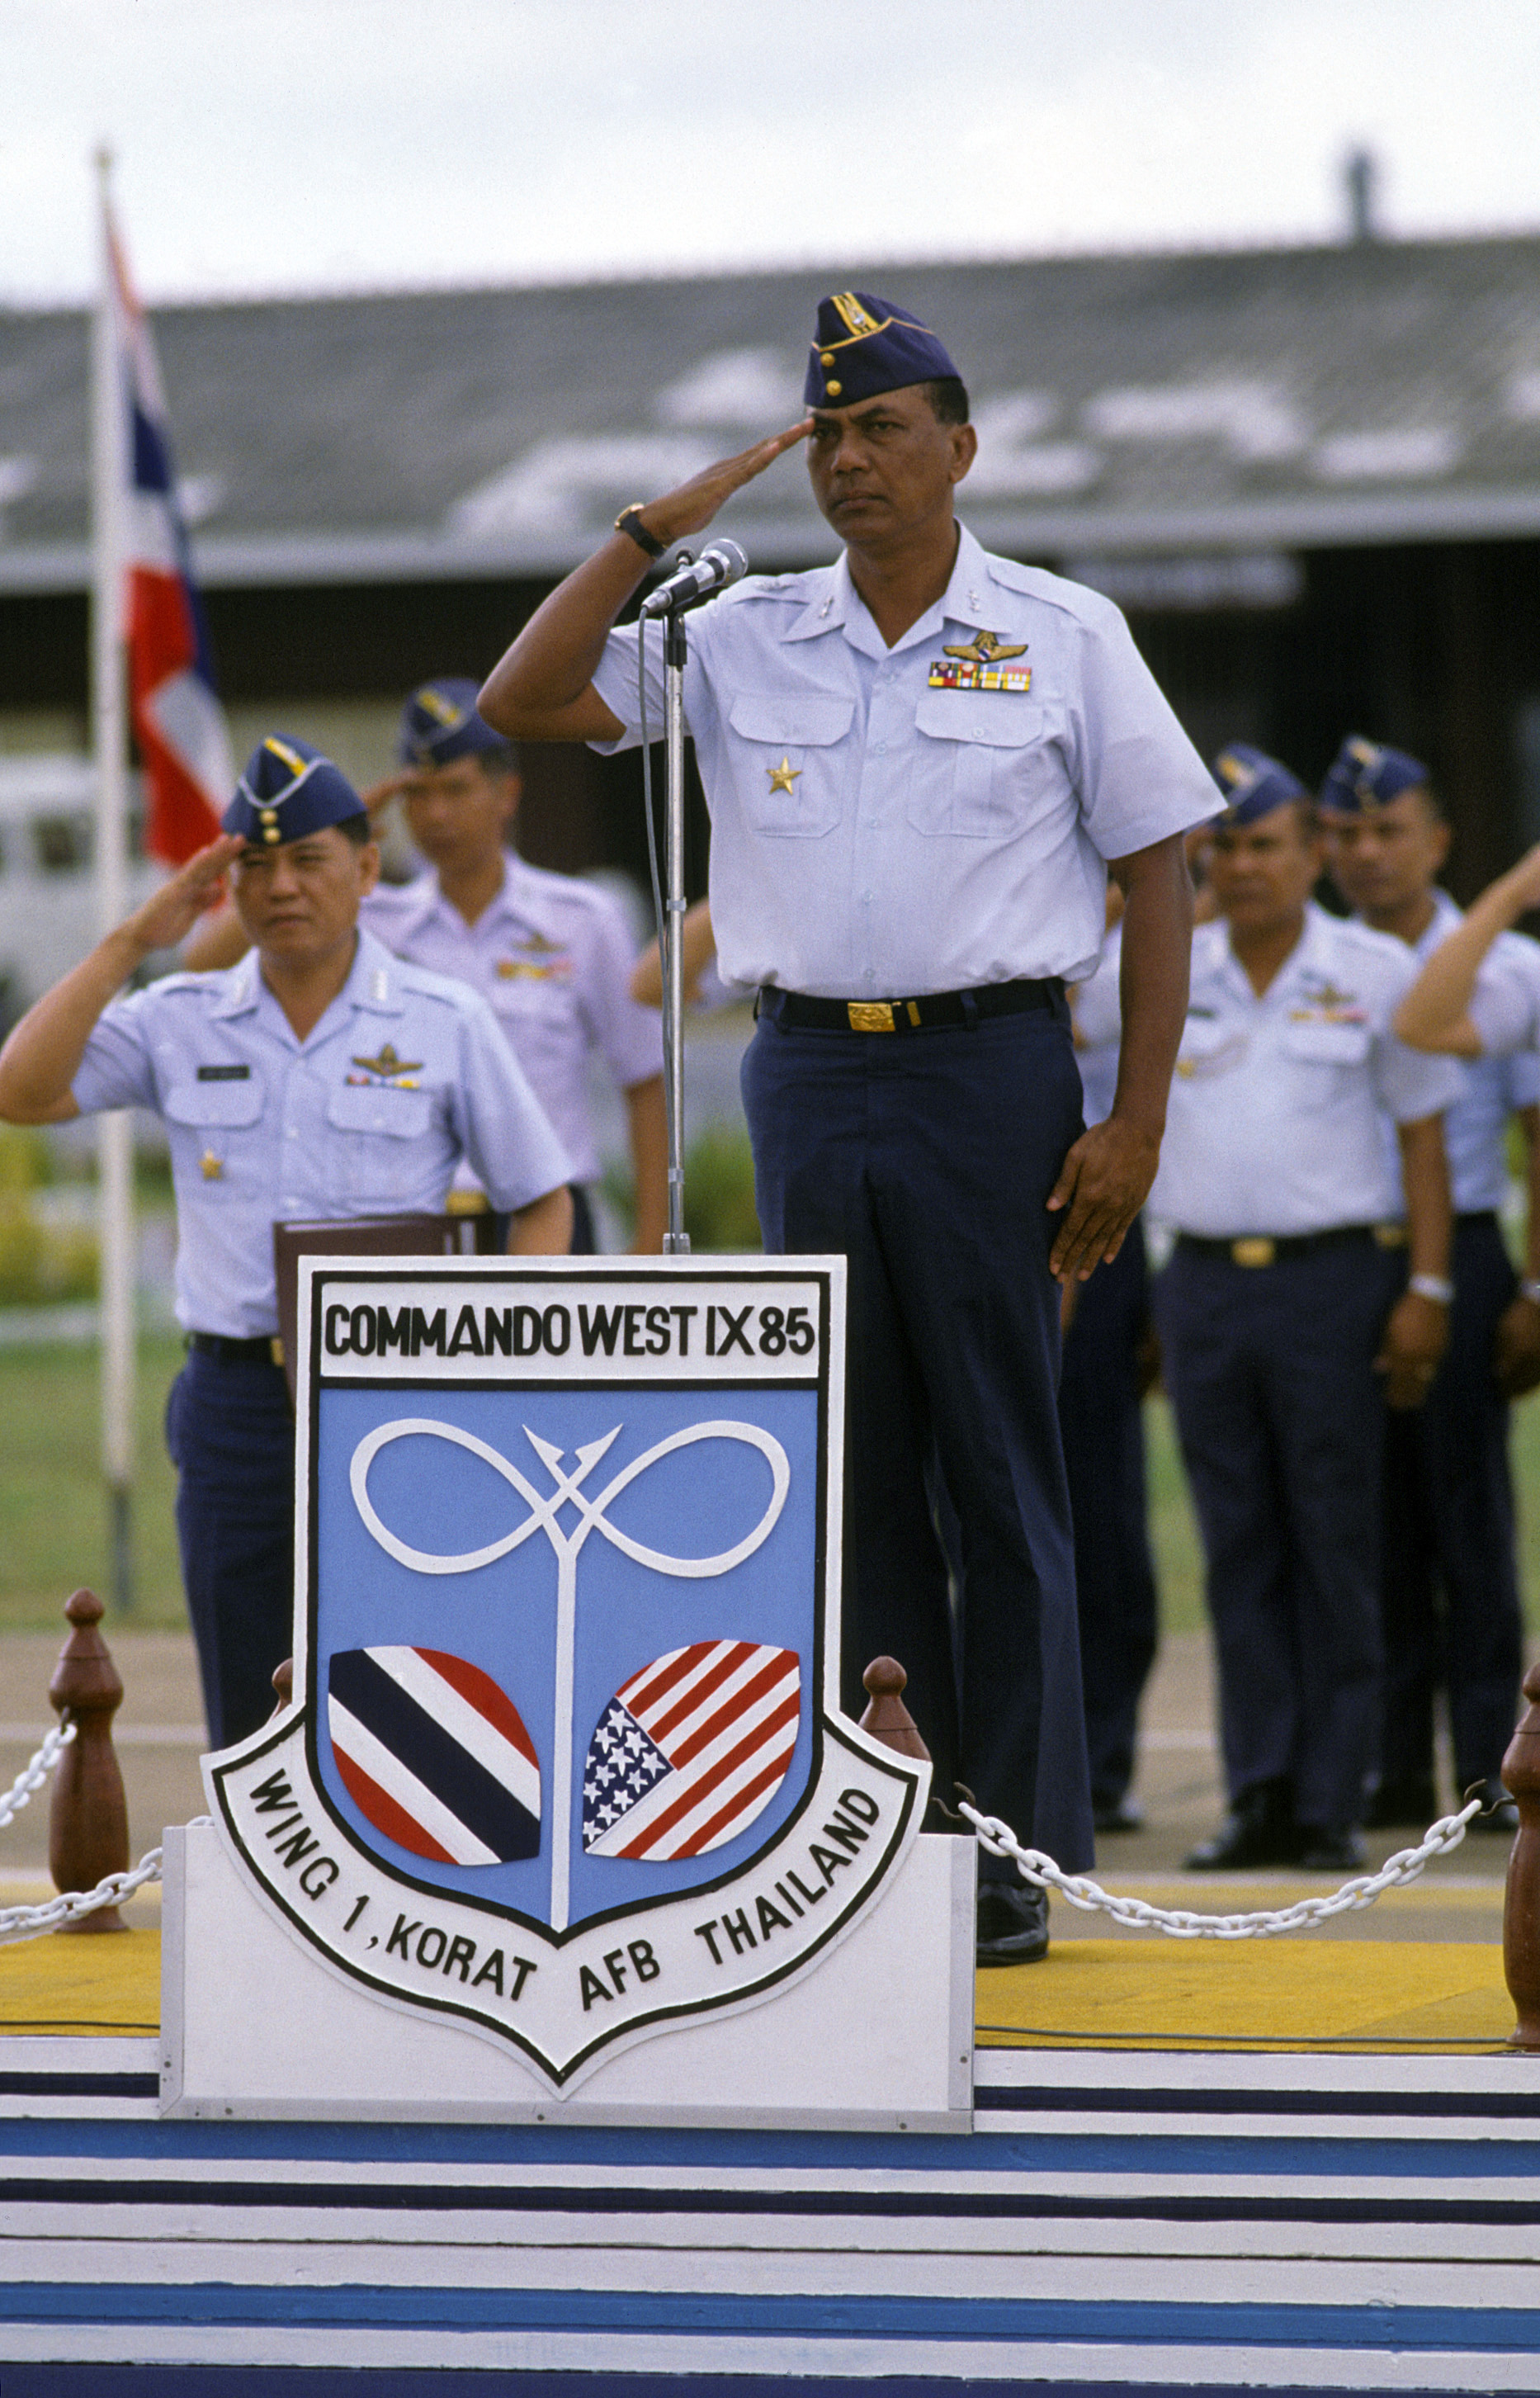 Air Marshall Gunn, Royal Thai Air Force, salutes as the national anthems of Thailand and the United States are played. The two countries are participating in COMMANDO WEST IX, a joint US and Thailand training exercise